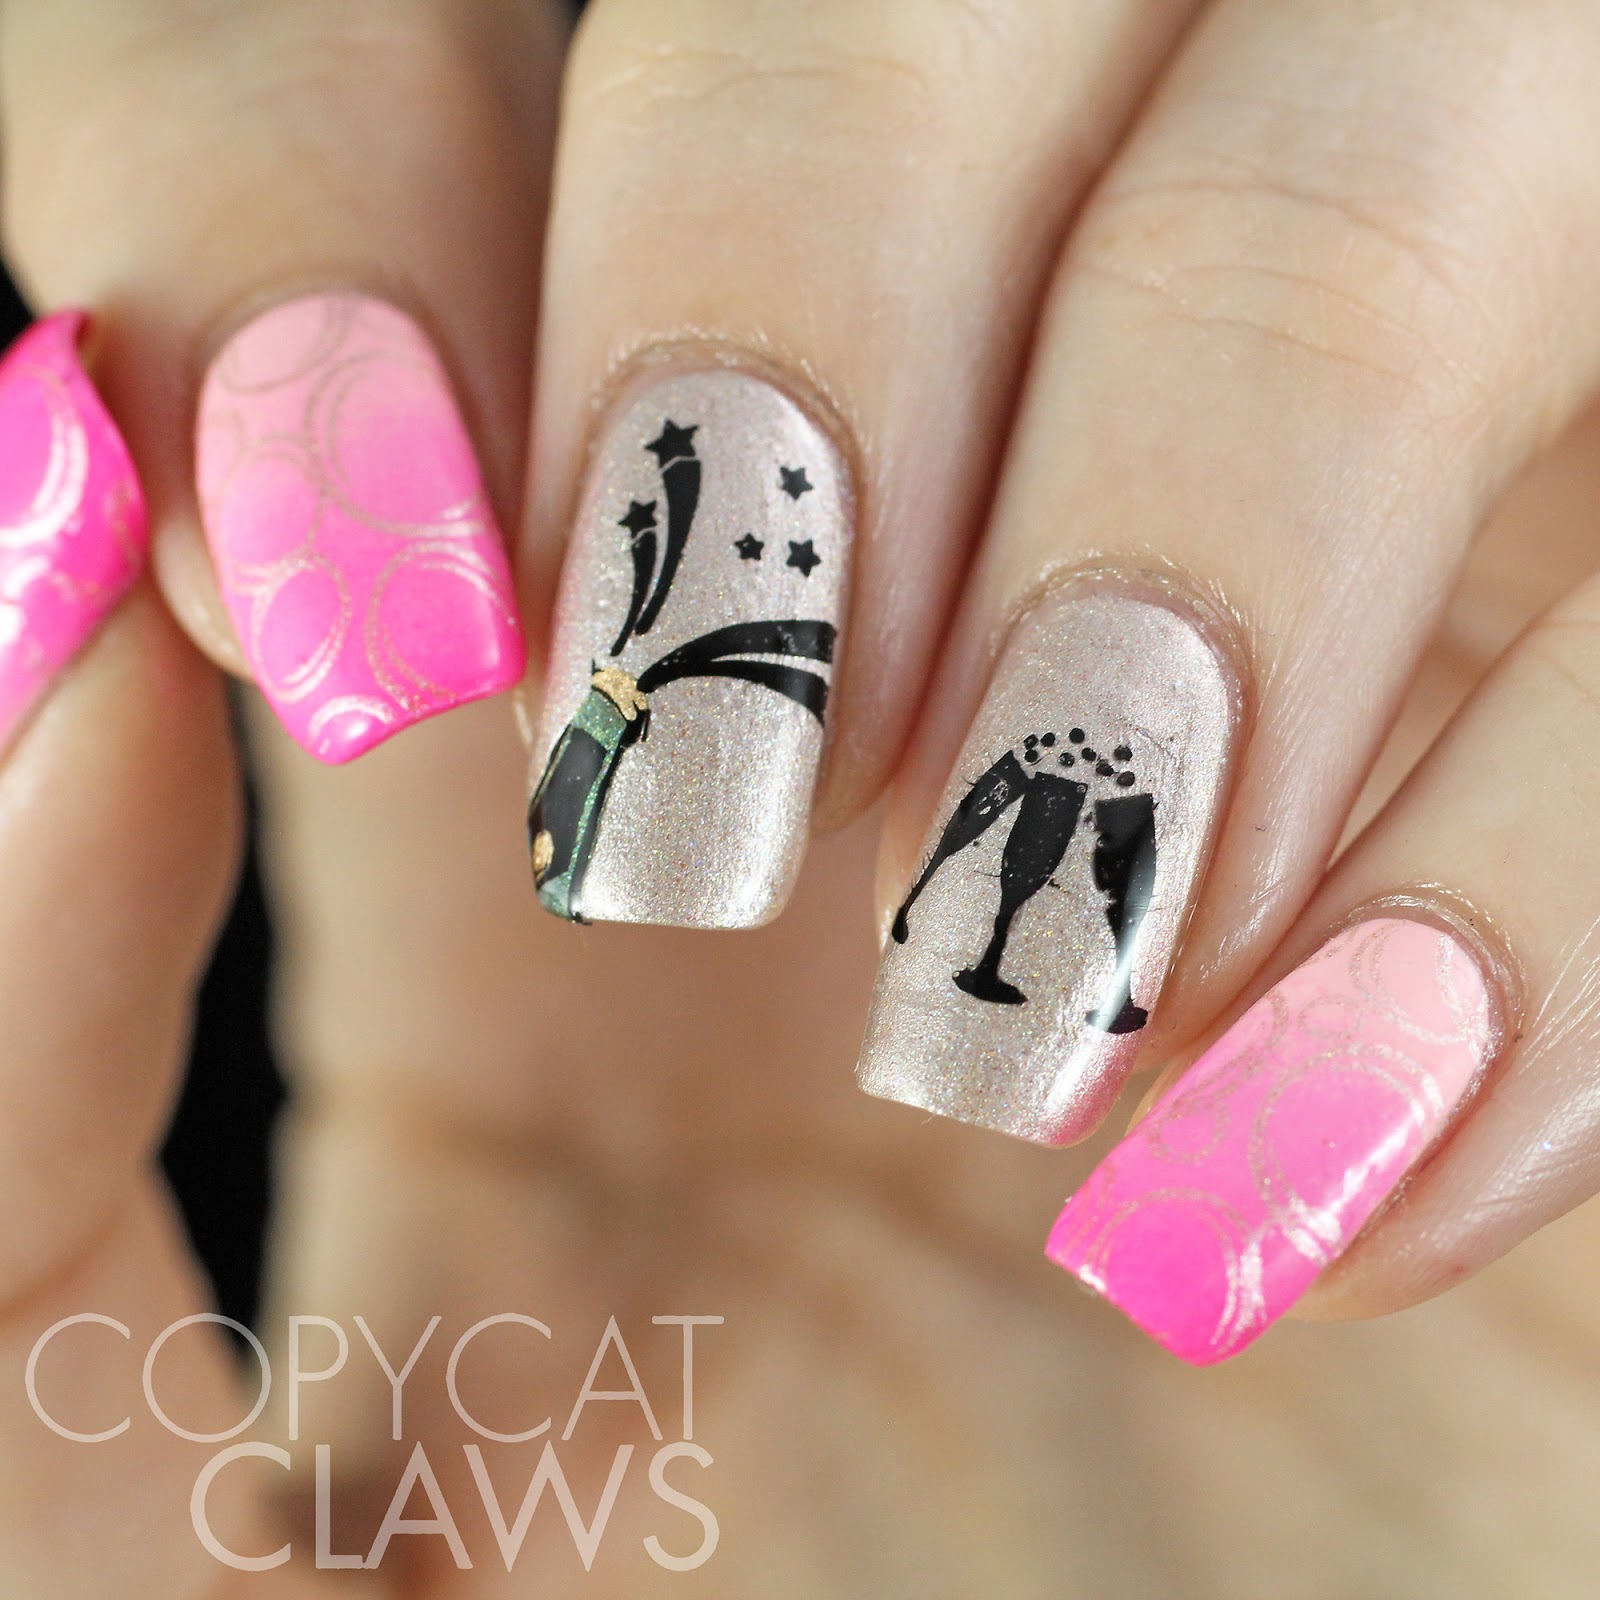 Copycat claws big little lies inspired nail art the last thing i did was matte it but i think i liked it shinier better prinsesfo Image collections